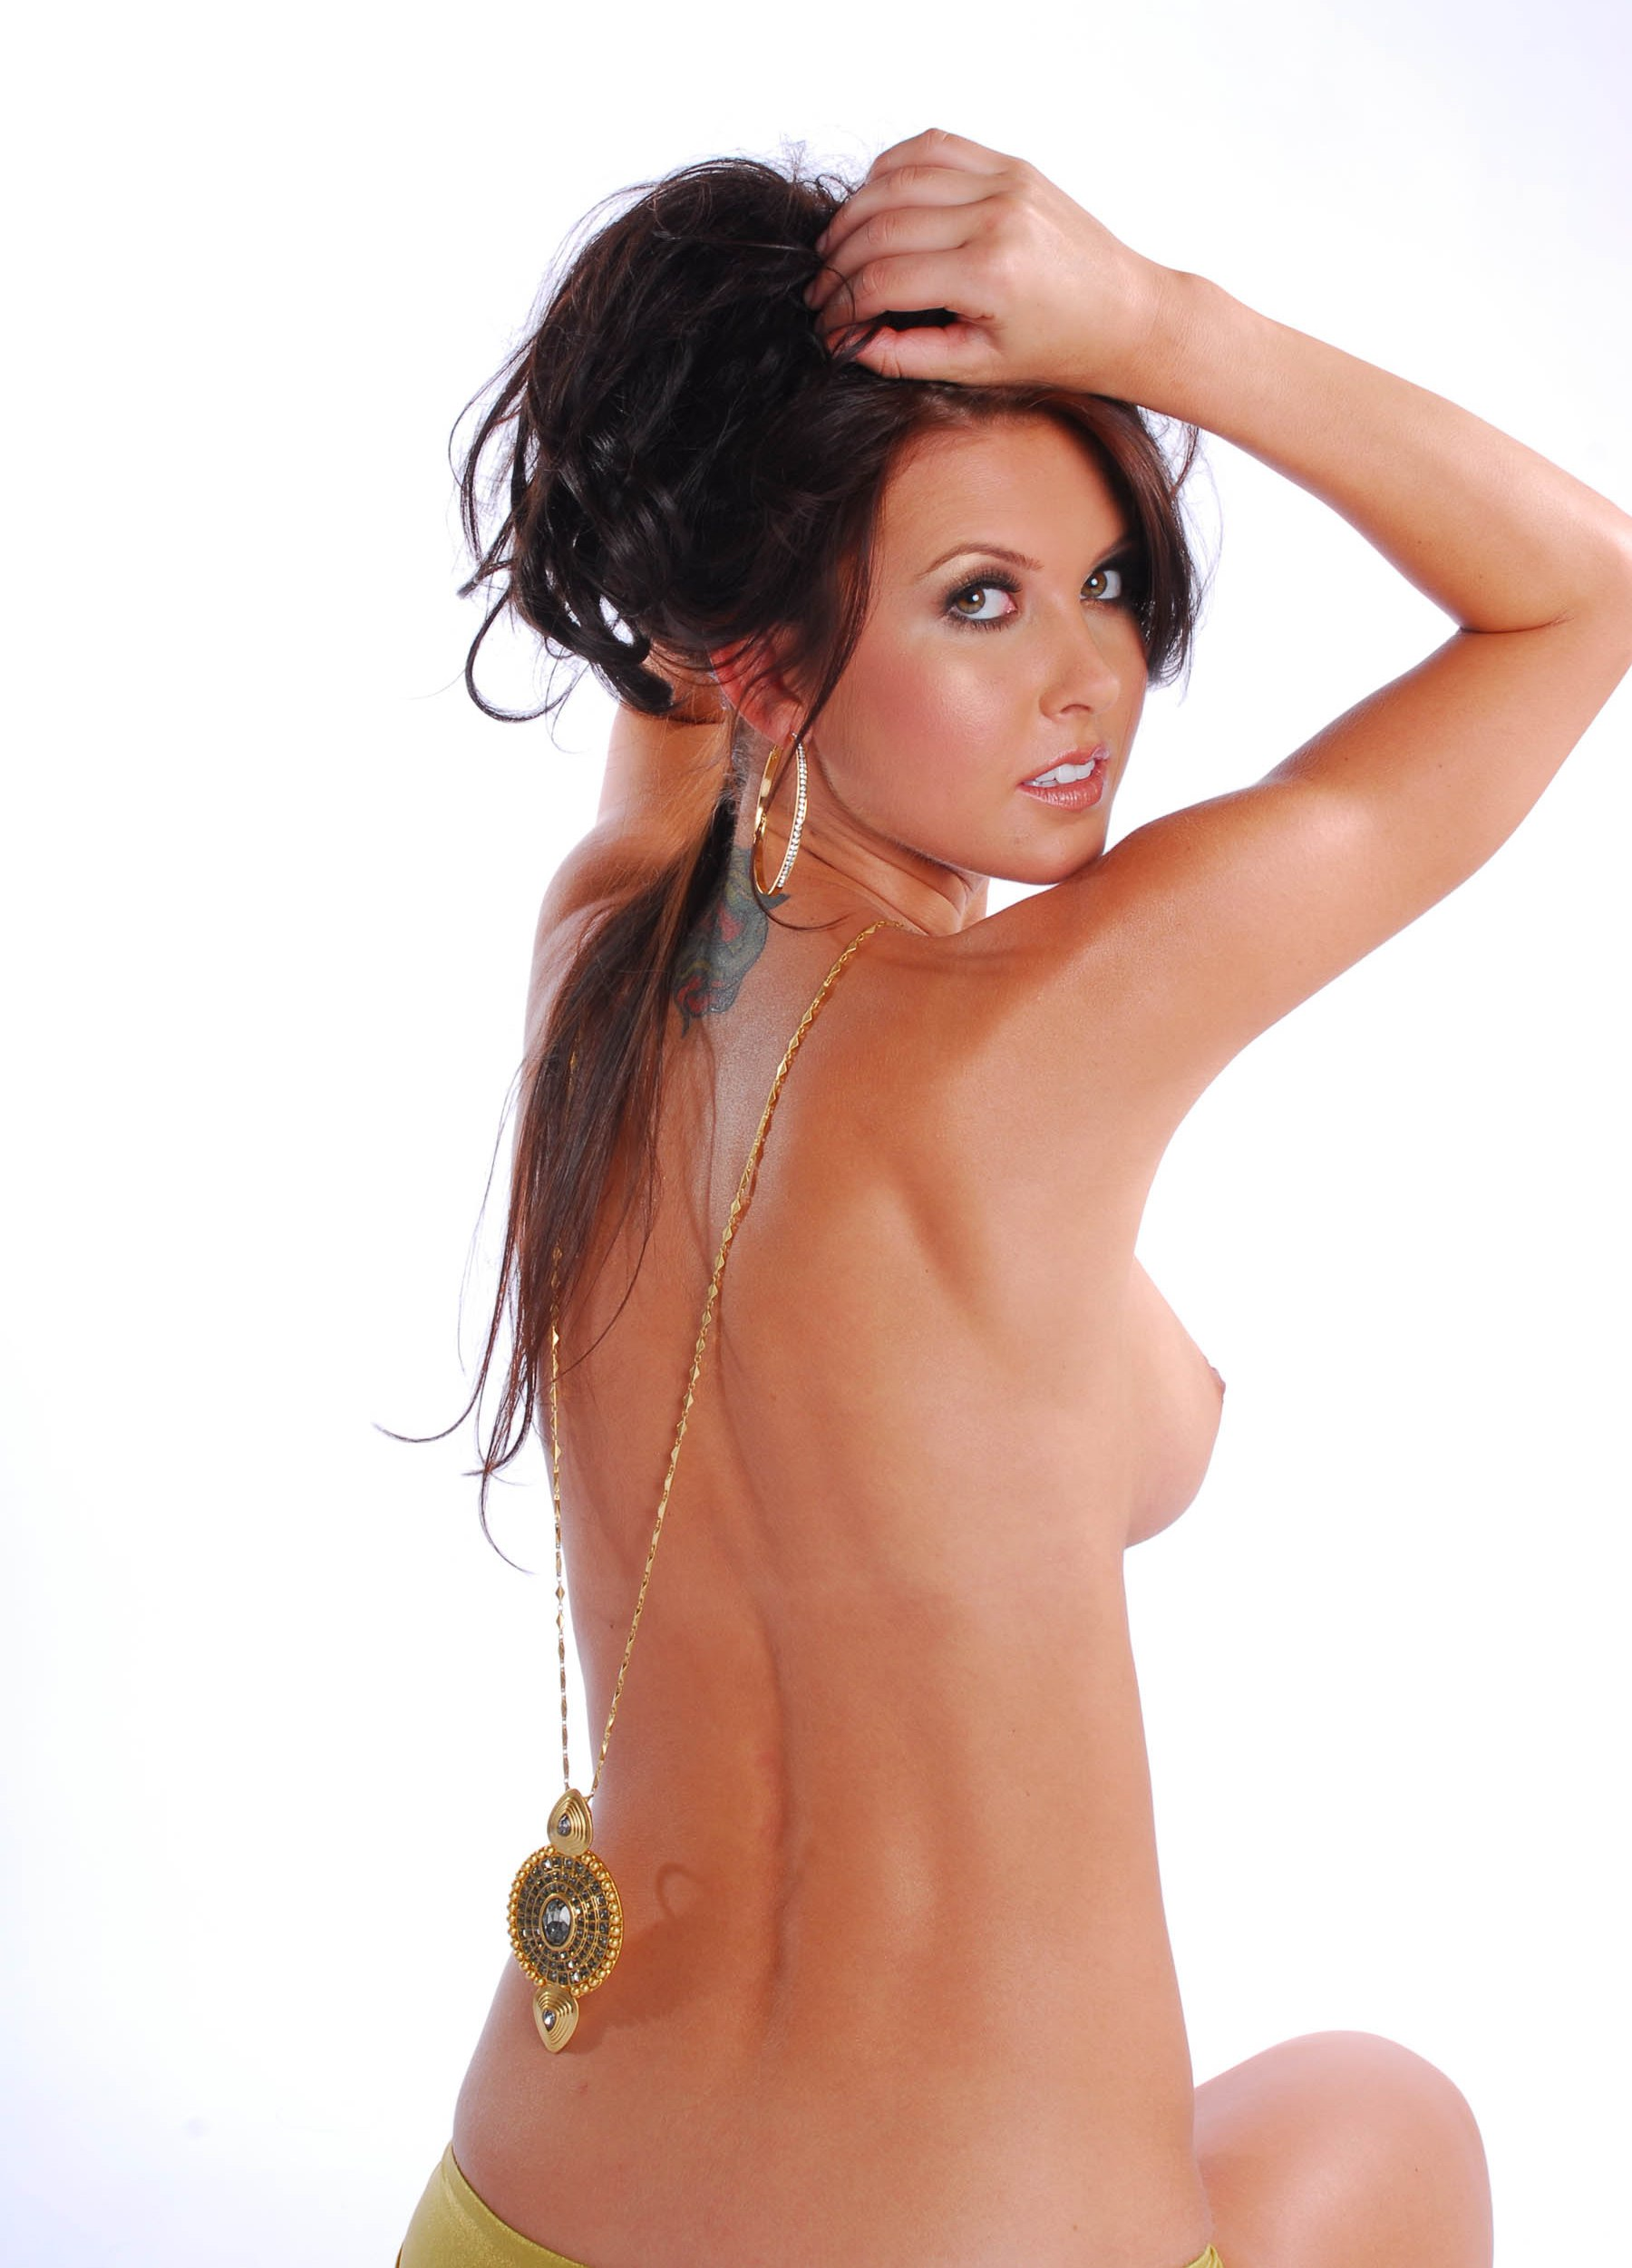 audrina partridge topless naked ... with new galleries, HD videos, journal entries, and live webcam shows!